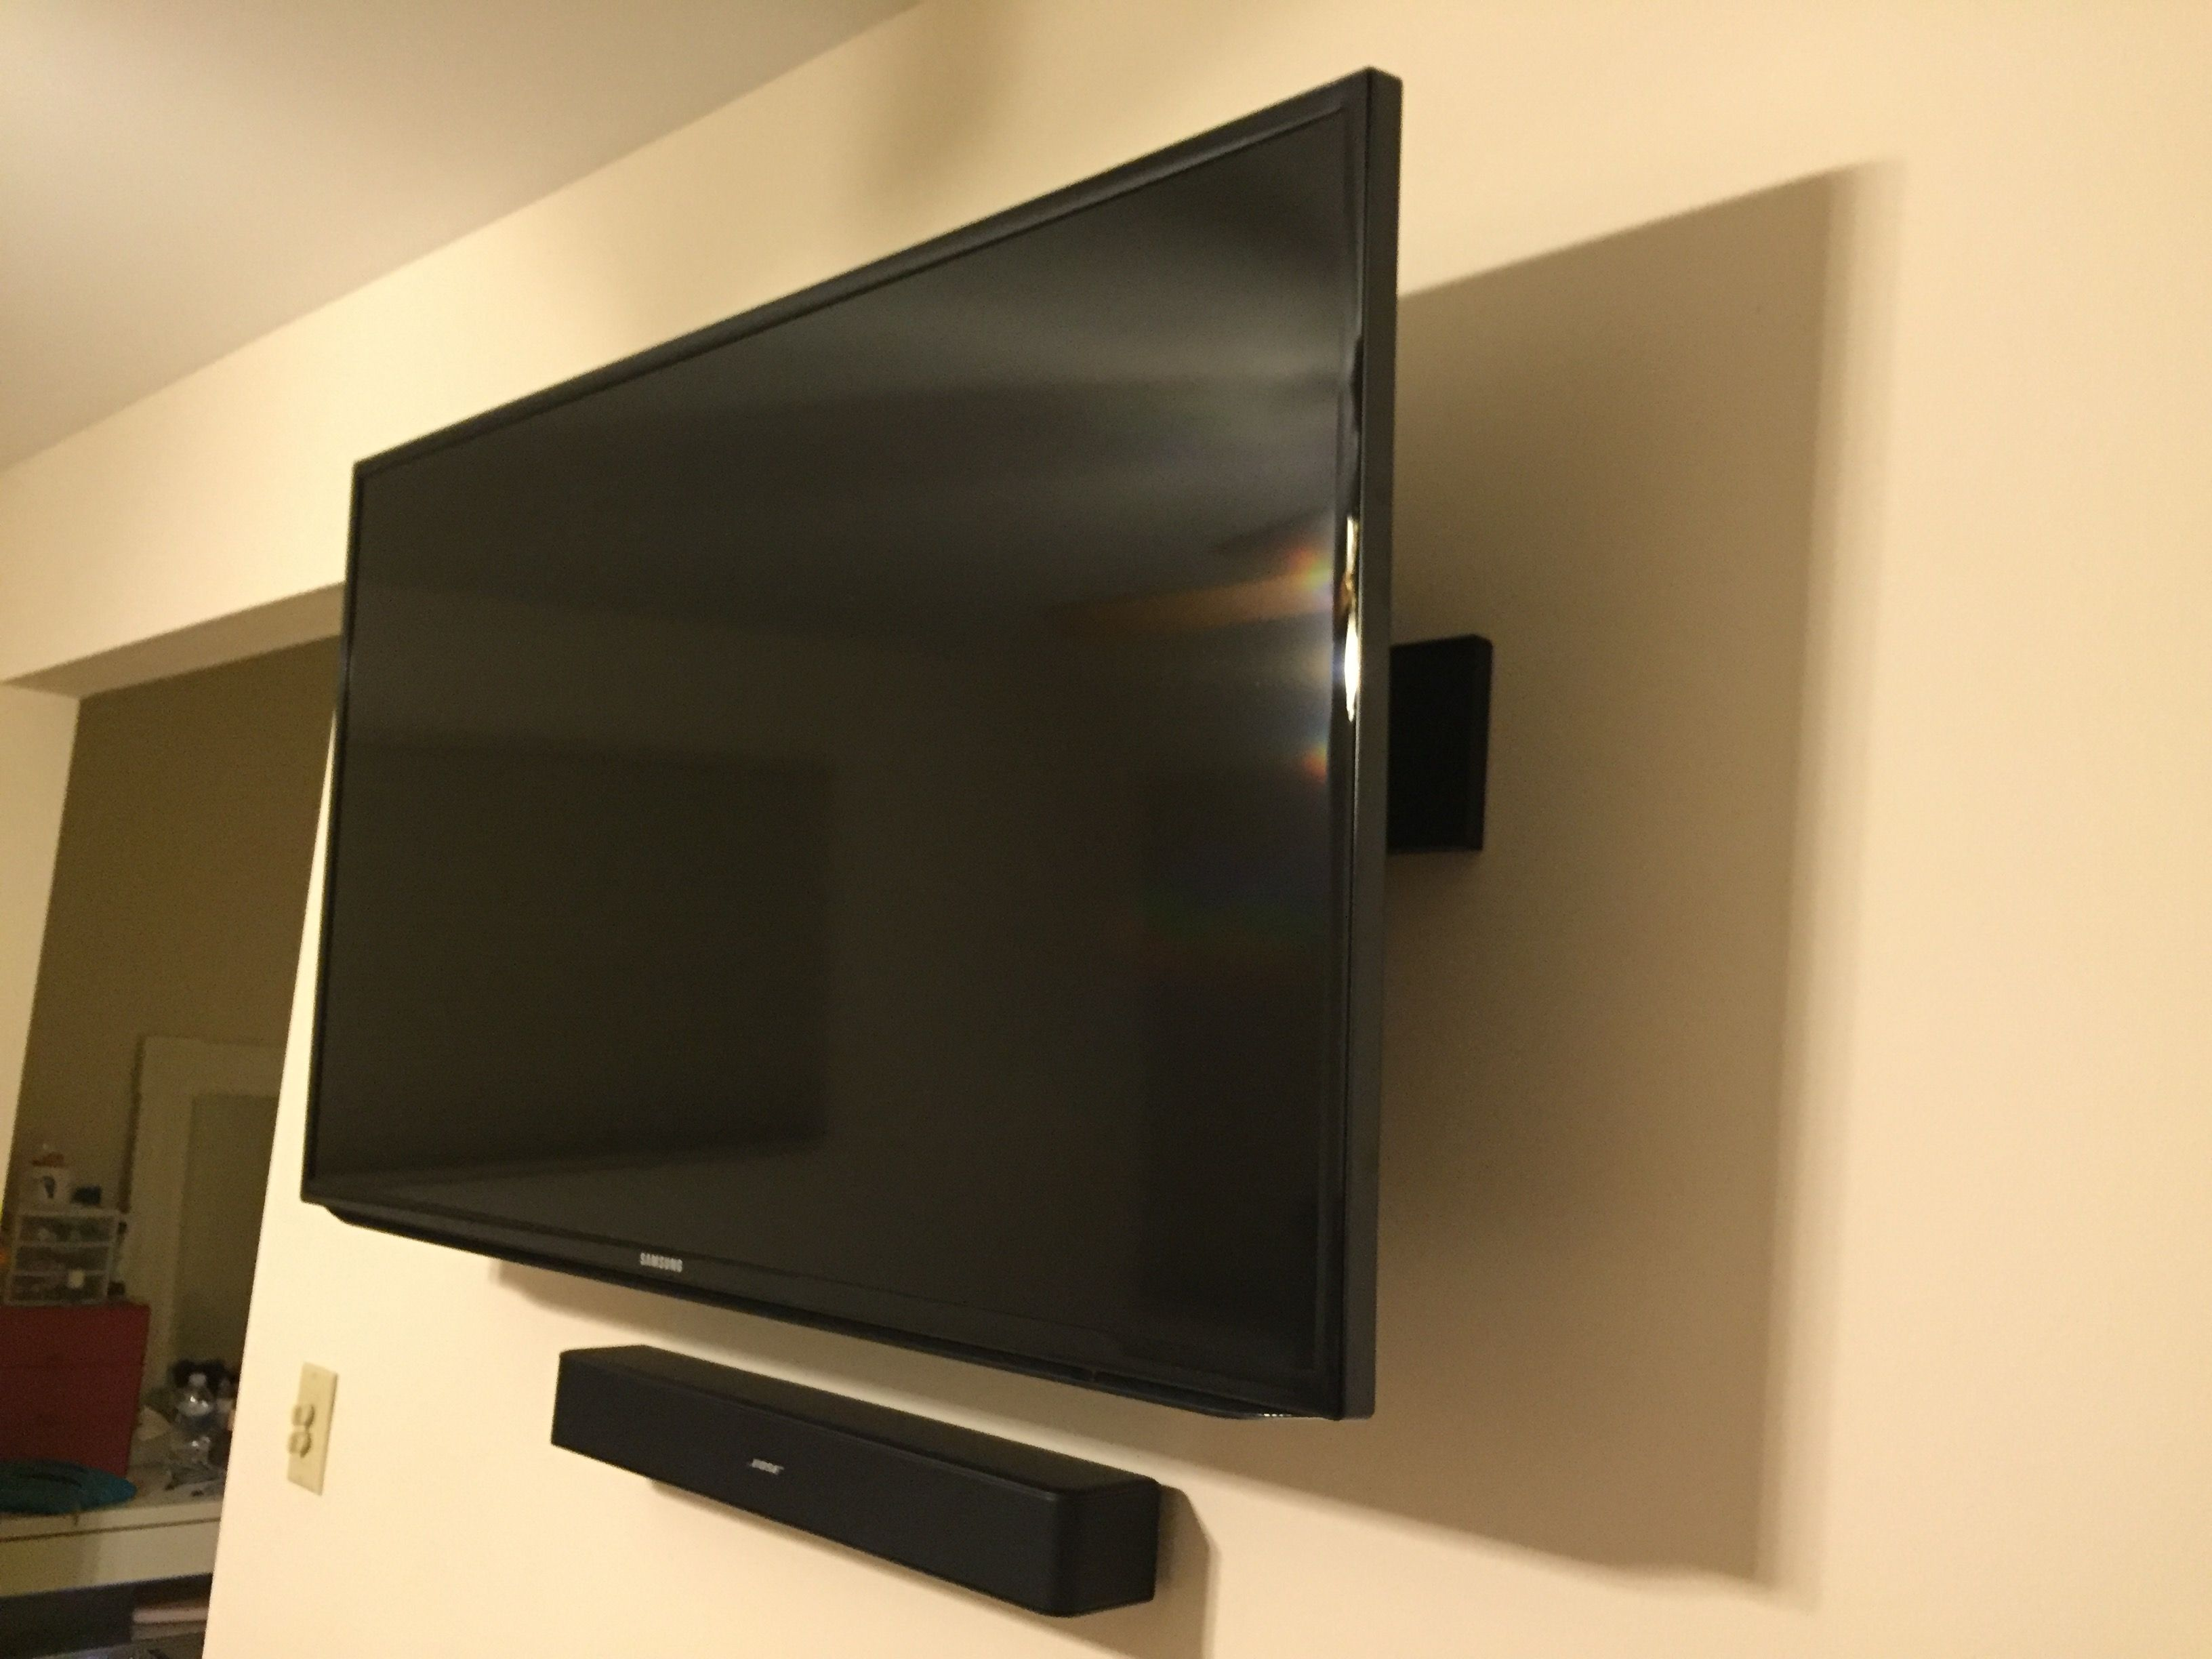 Fire Tv Wall Mounted Behind My 46 Samsung Led And Bose Solo 5 All Wires Are Hidden Behind And Inside The Drywall John Agudelo Gmail Com Hideit Mounts Wall Mounted Tv